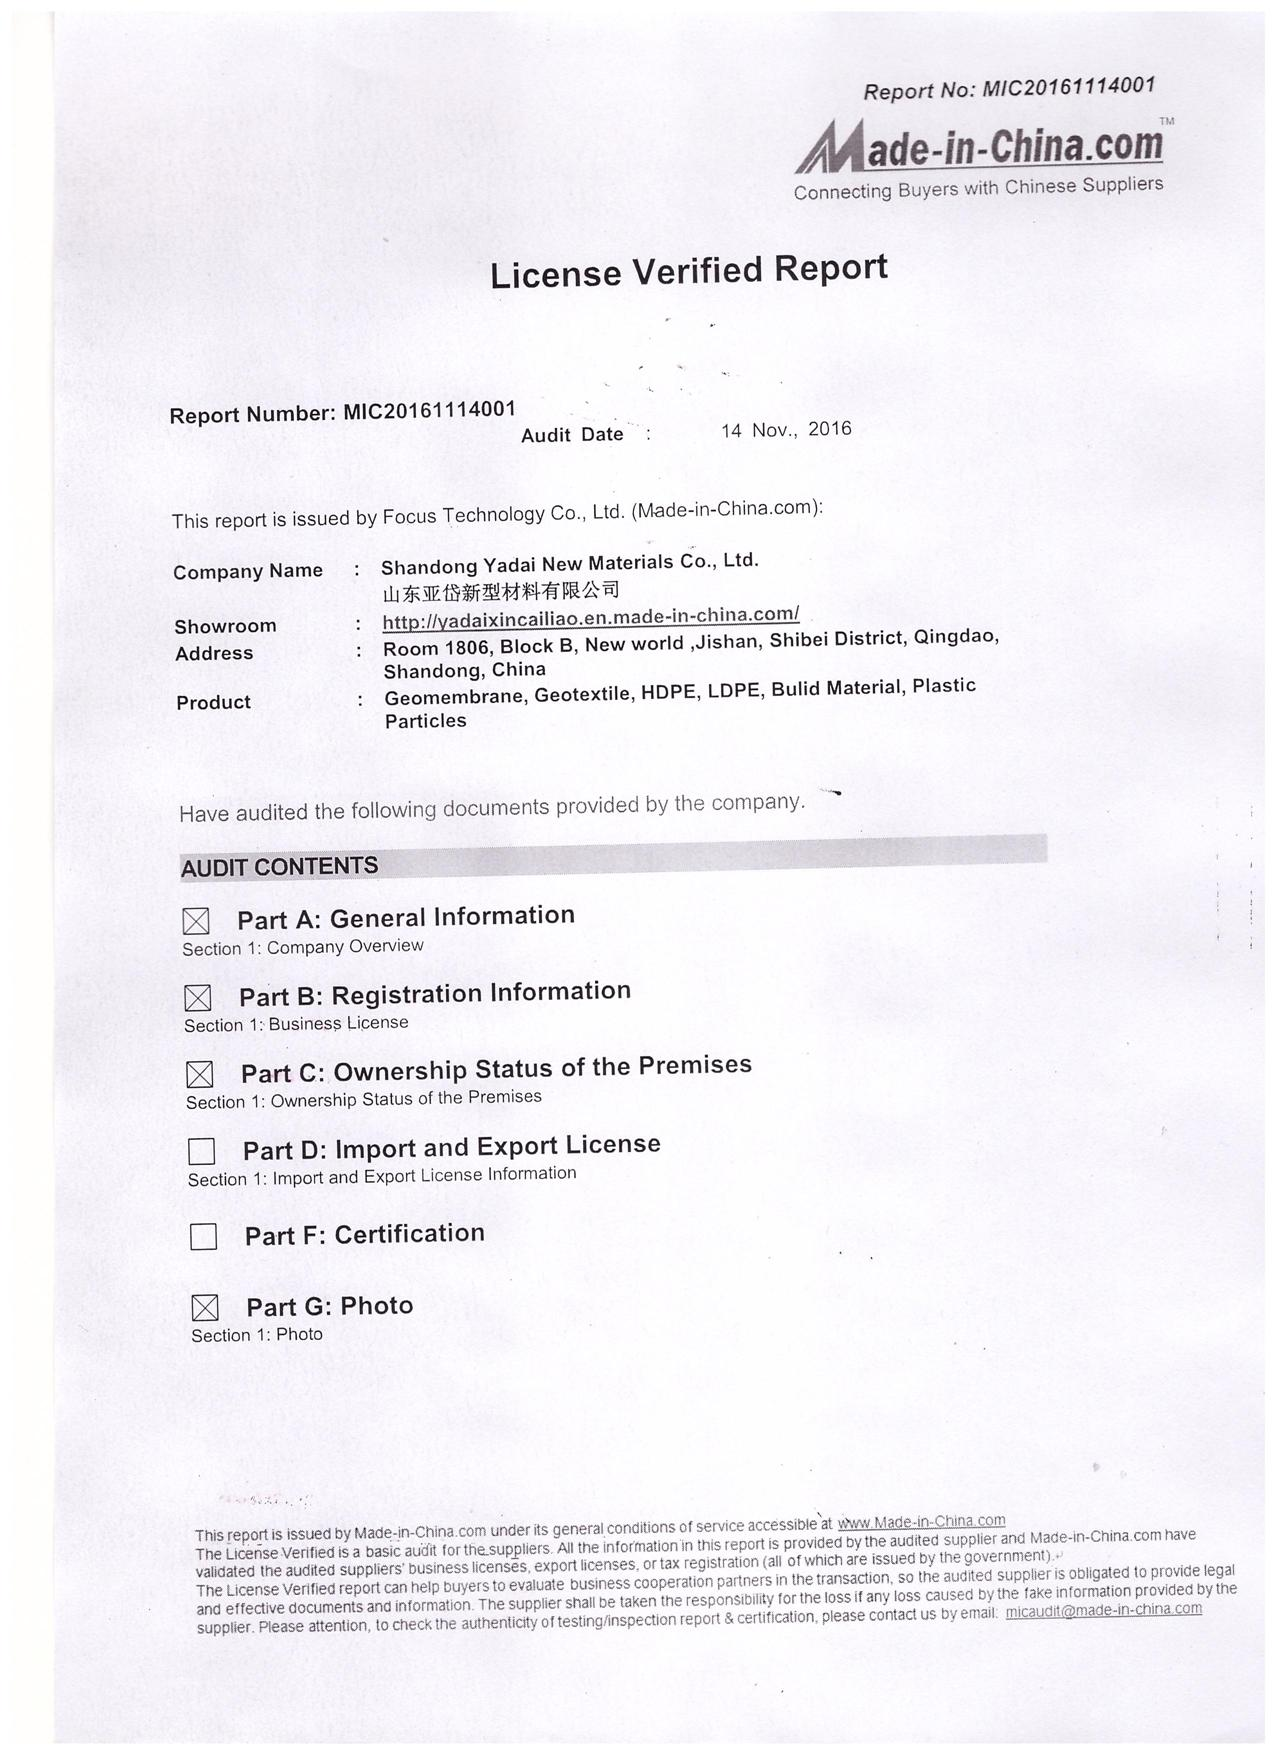 made-in-china license verified report